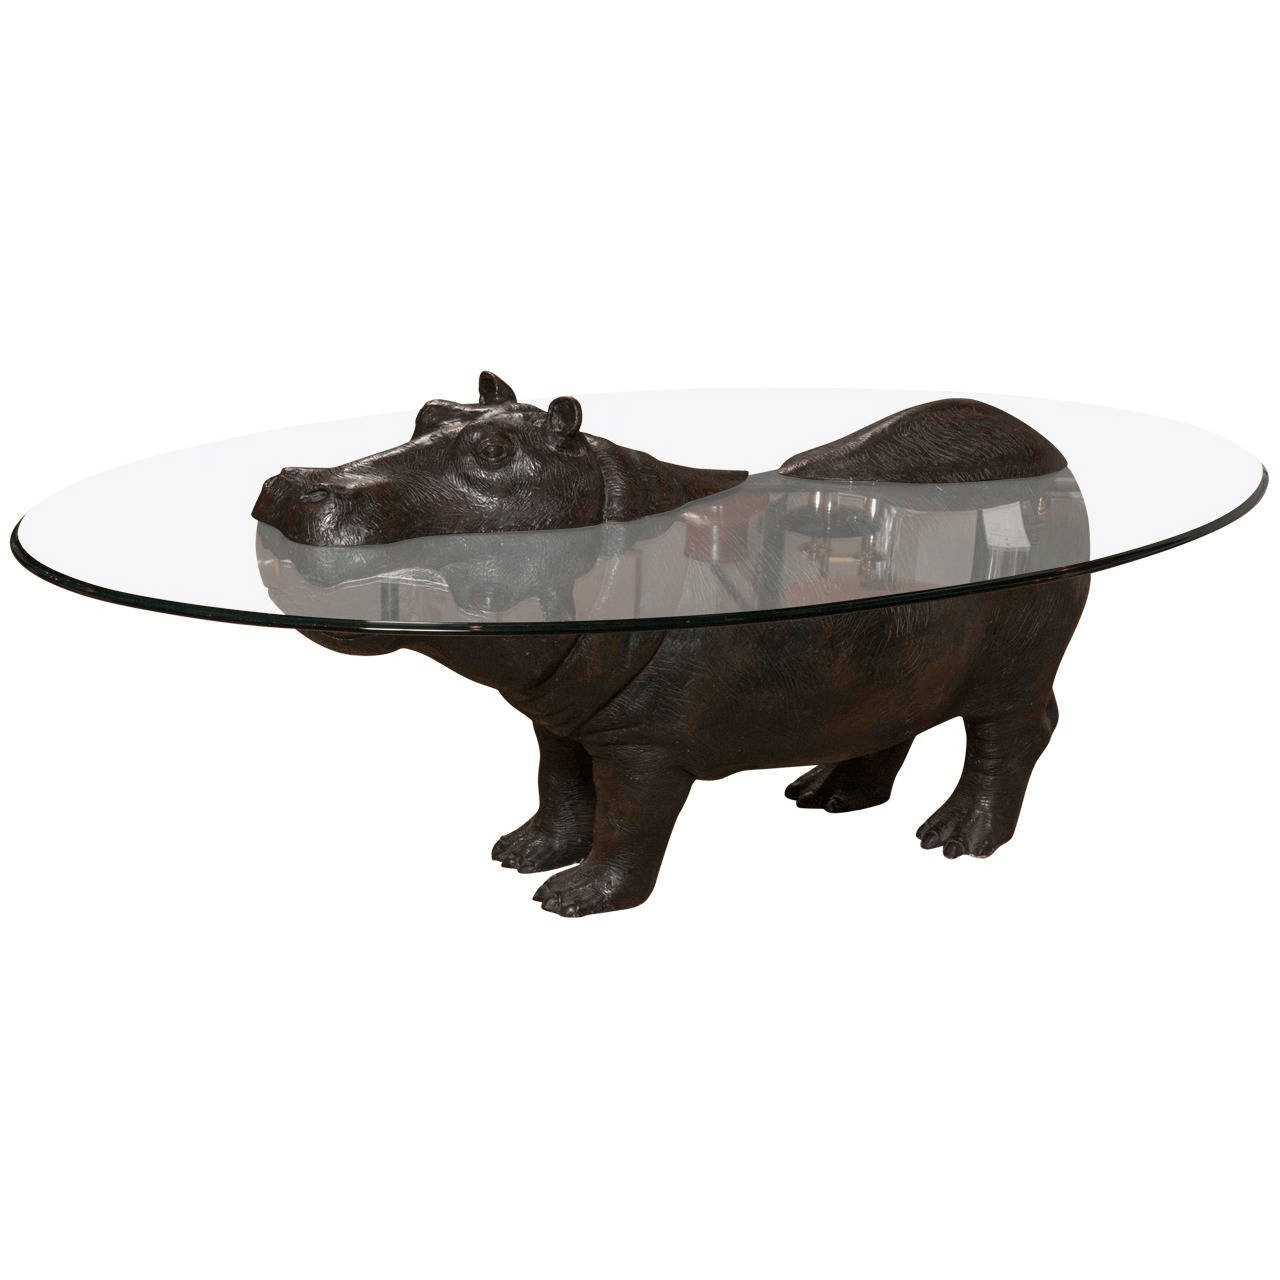 Puzzle Coffee Table Vs Hippo Coffee Table Which One